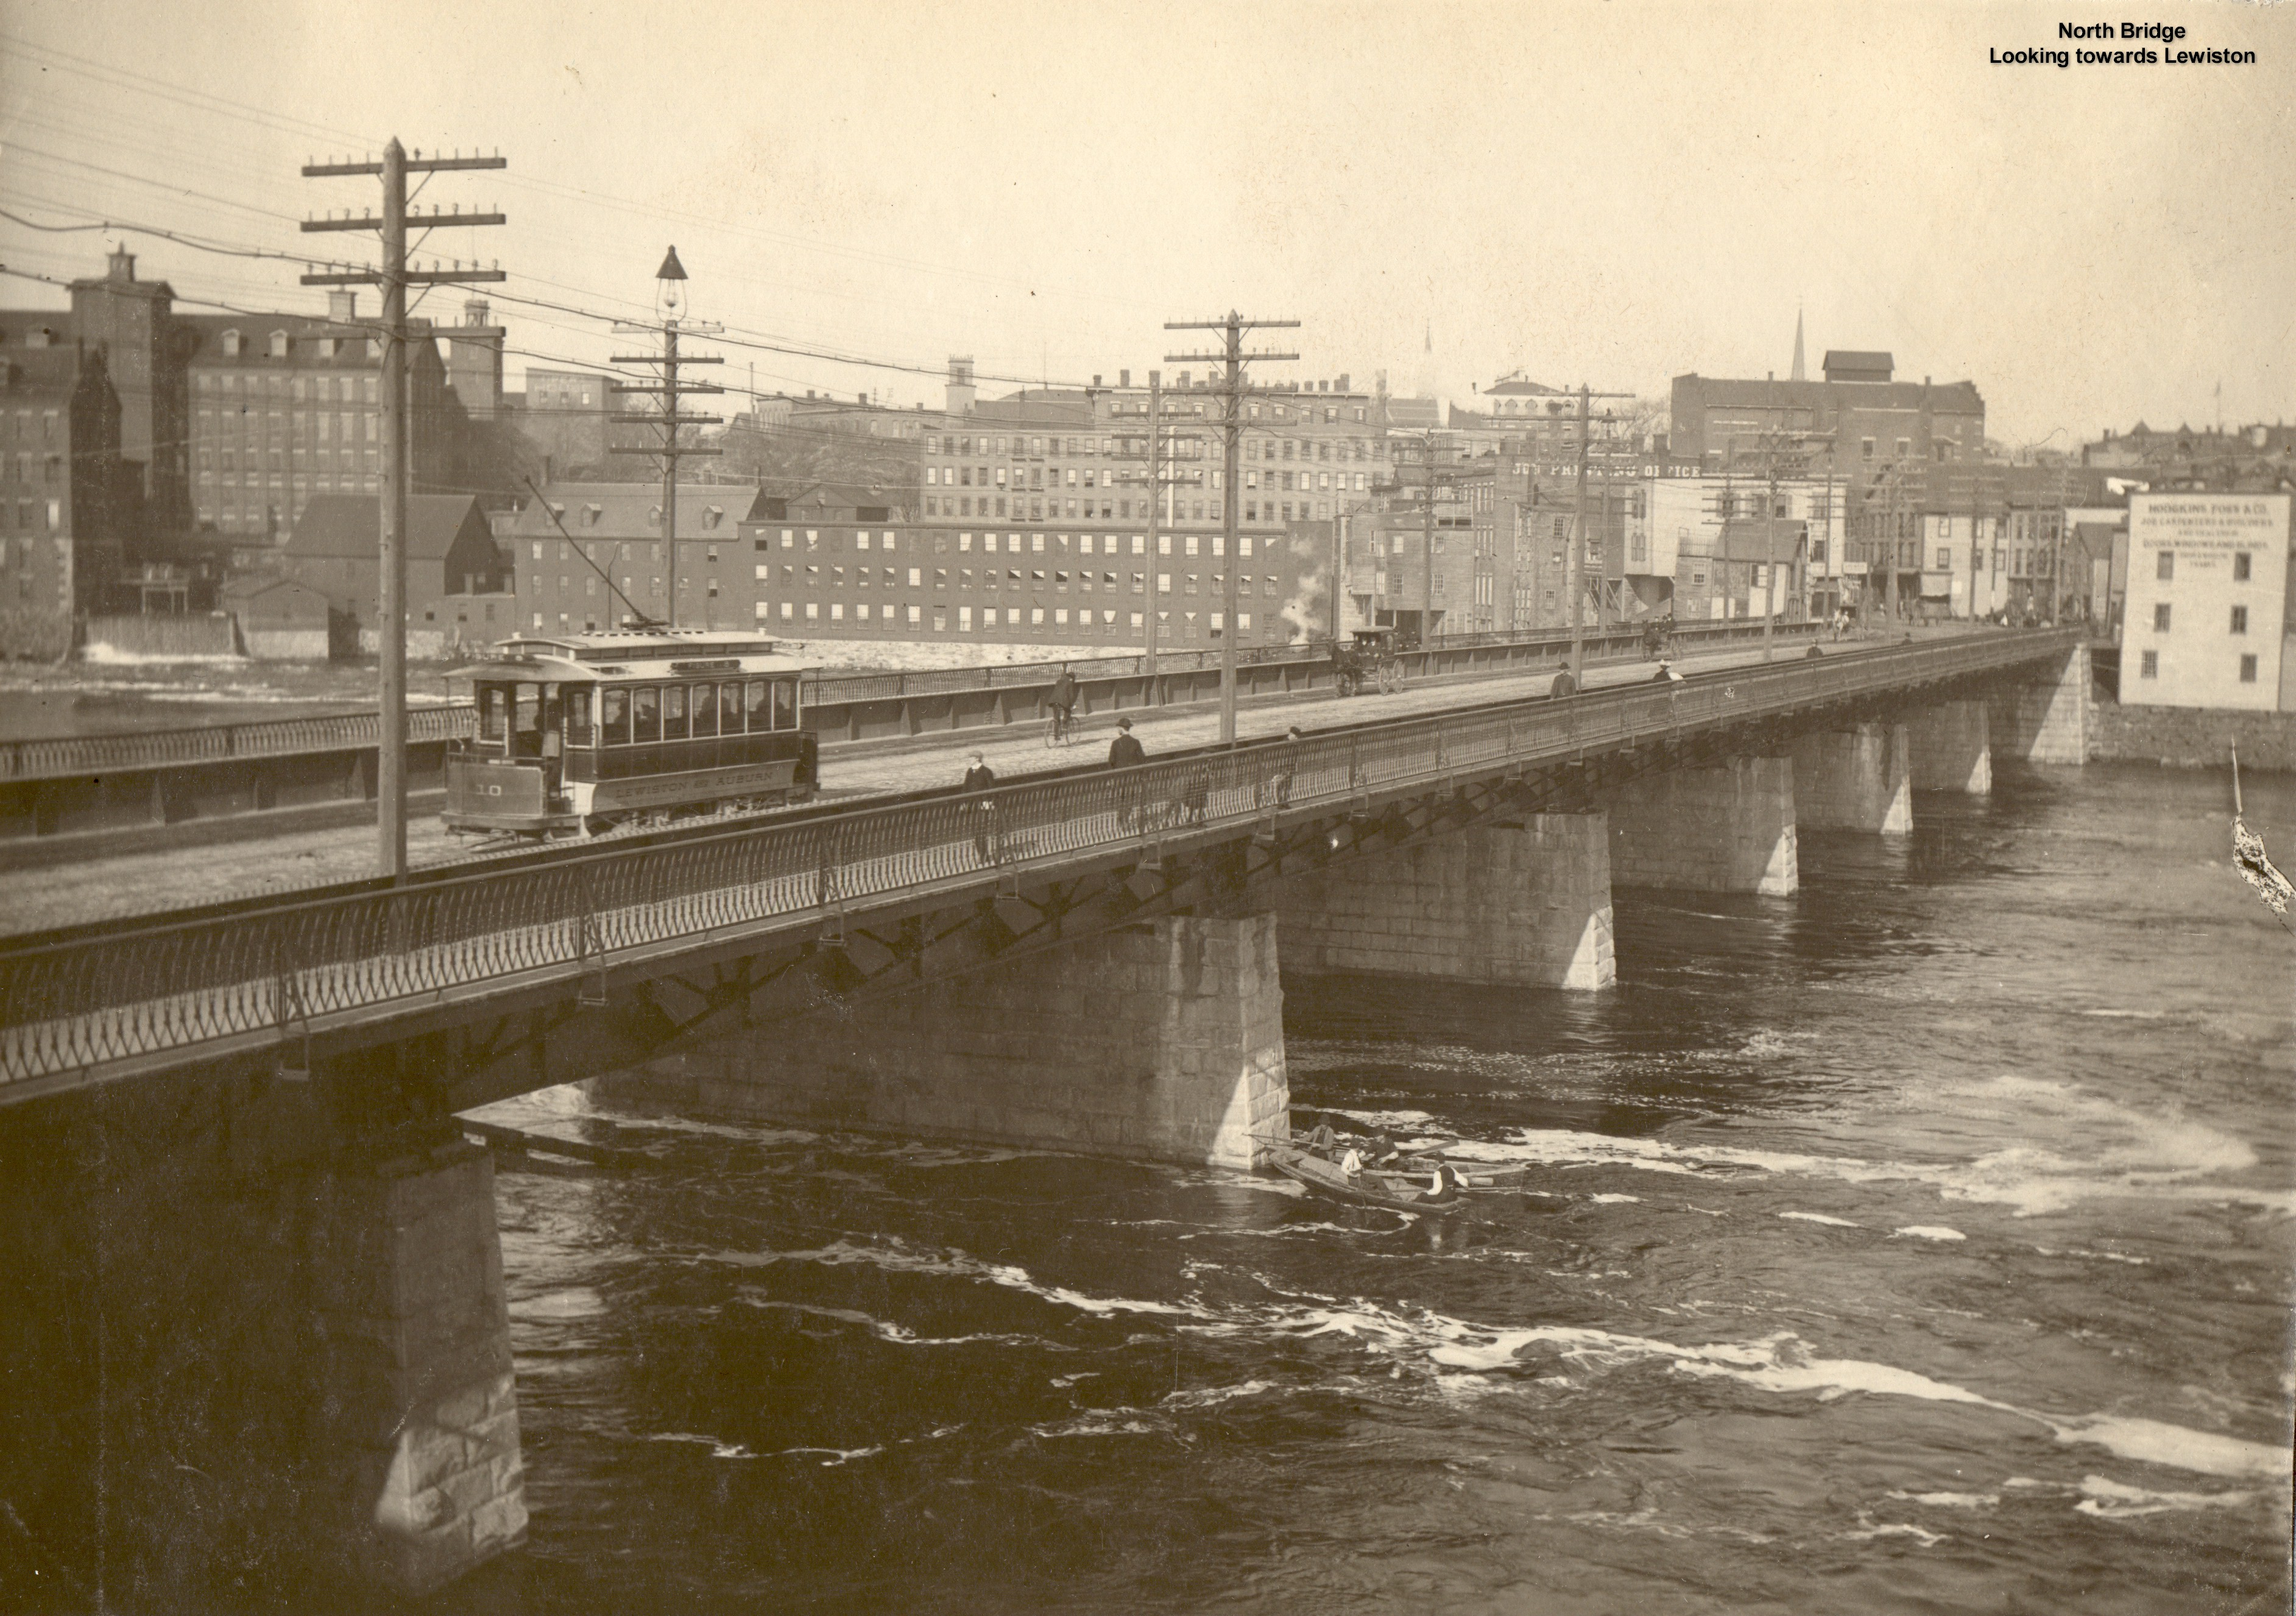 Lewiston/Auburn North Bridge with Trolley and small boat in river